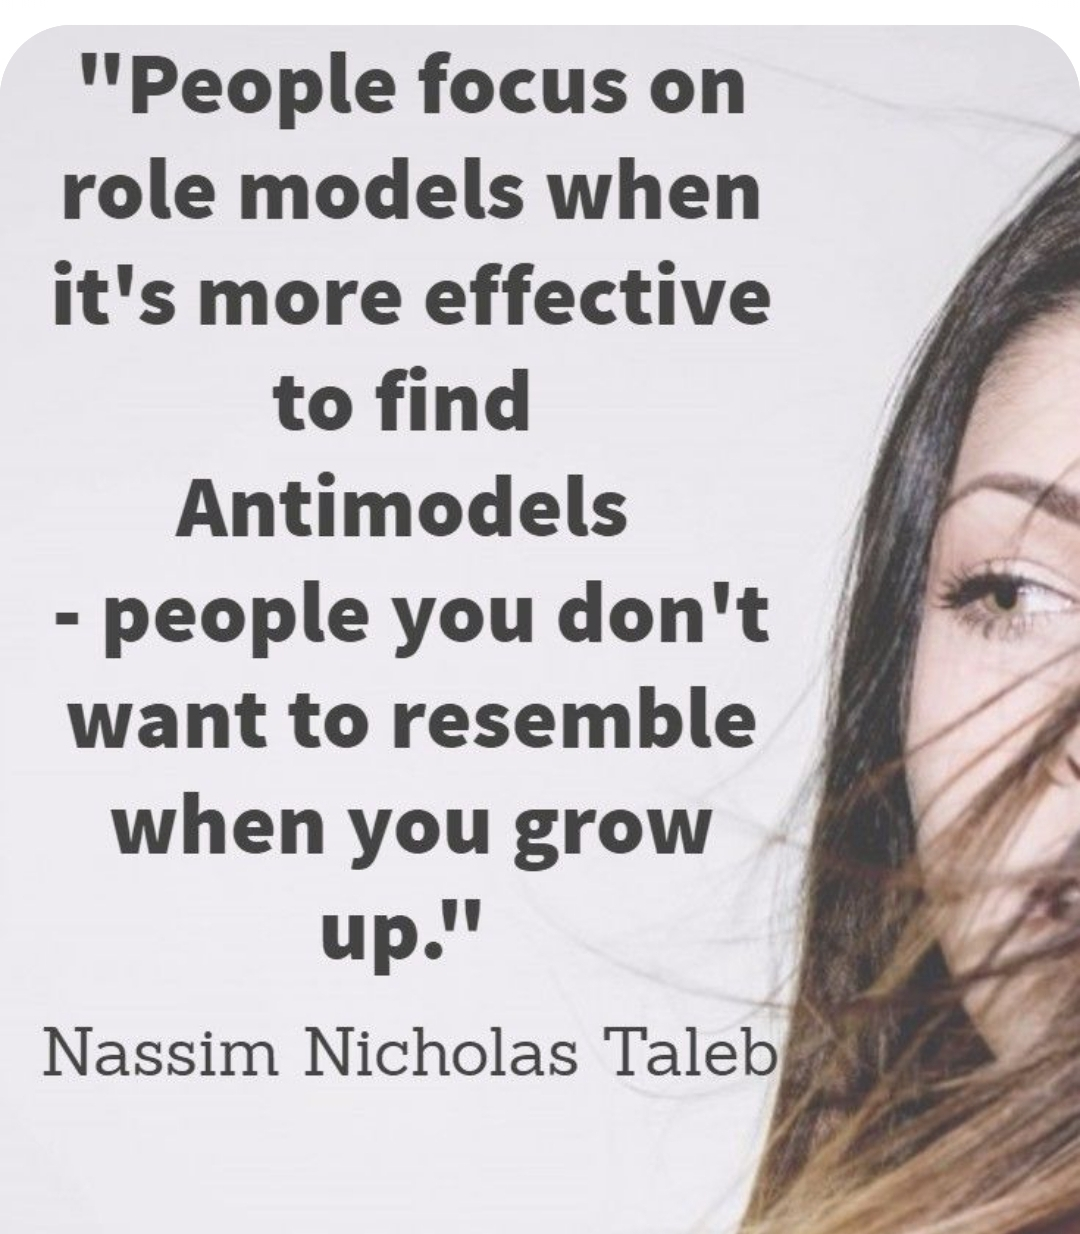 [Image] Role models